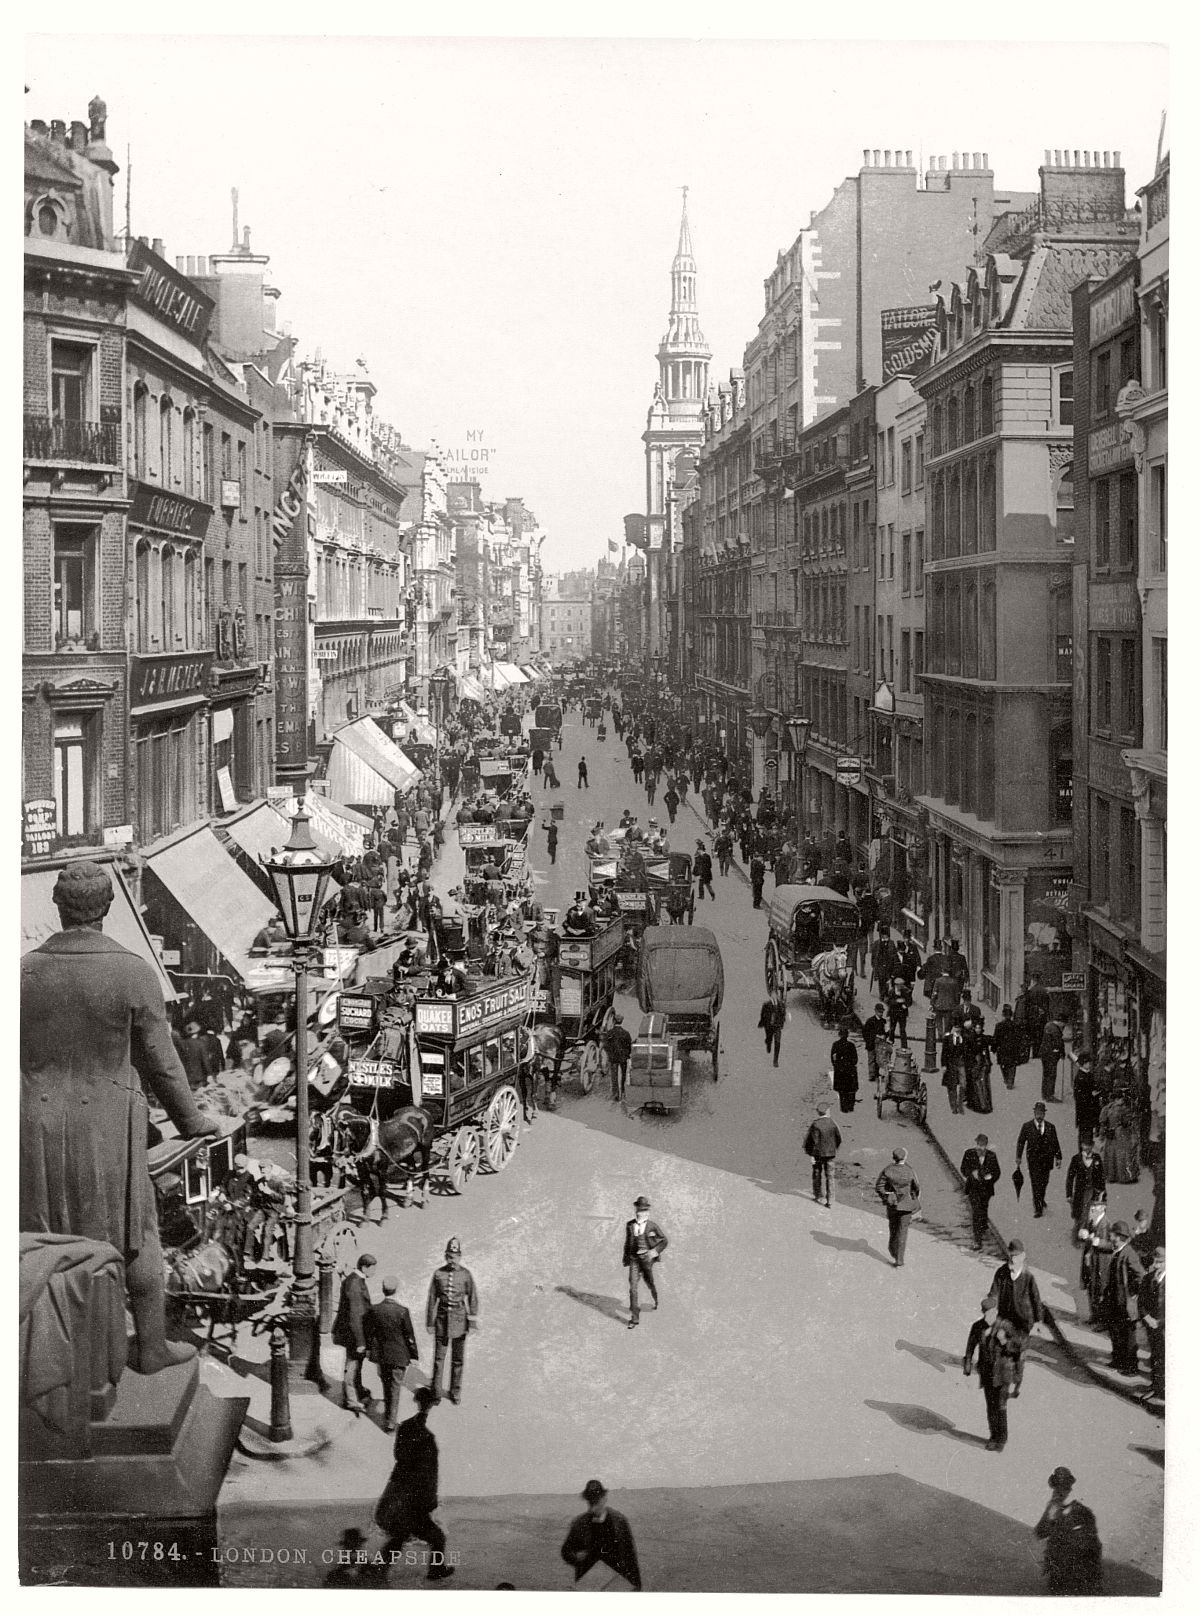 historic-bw-photos-of-london-england-in-19th-century-13